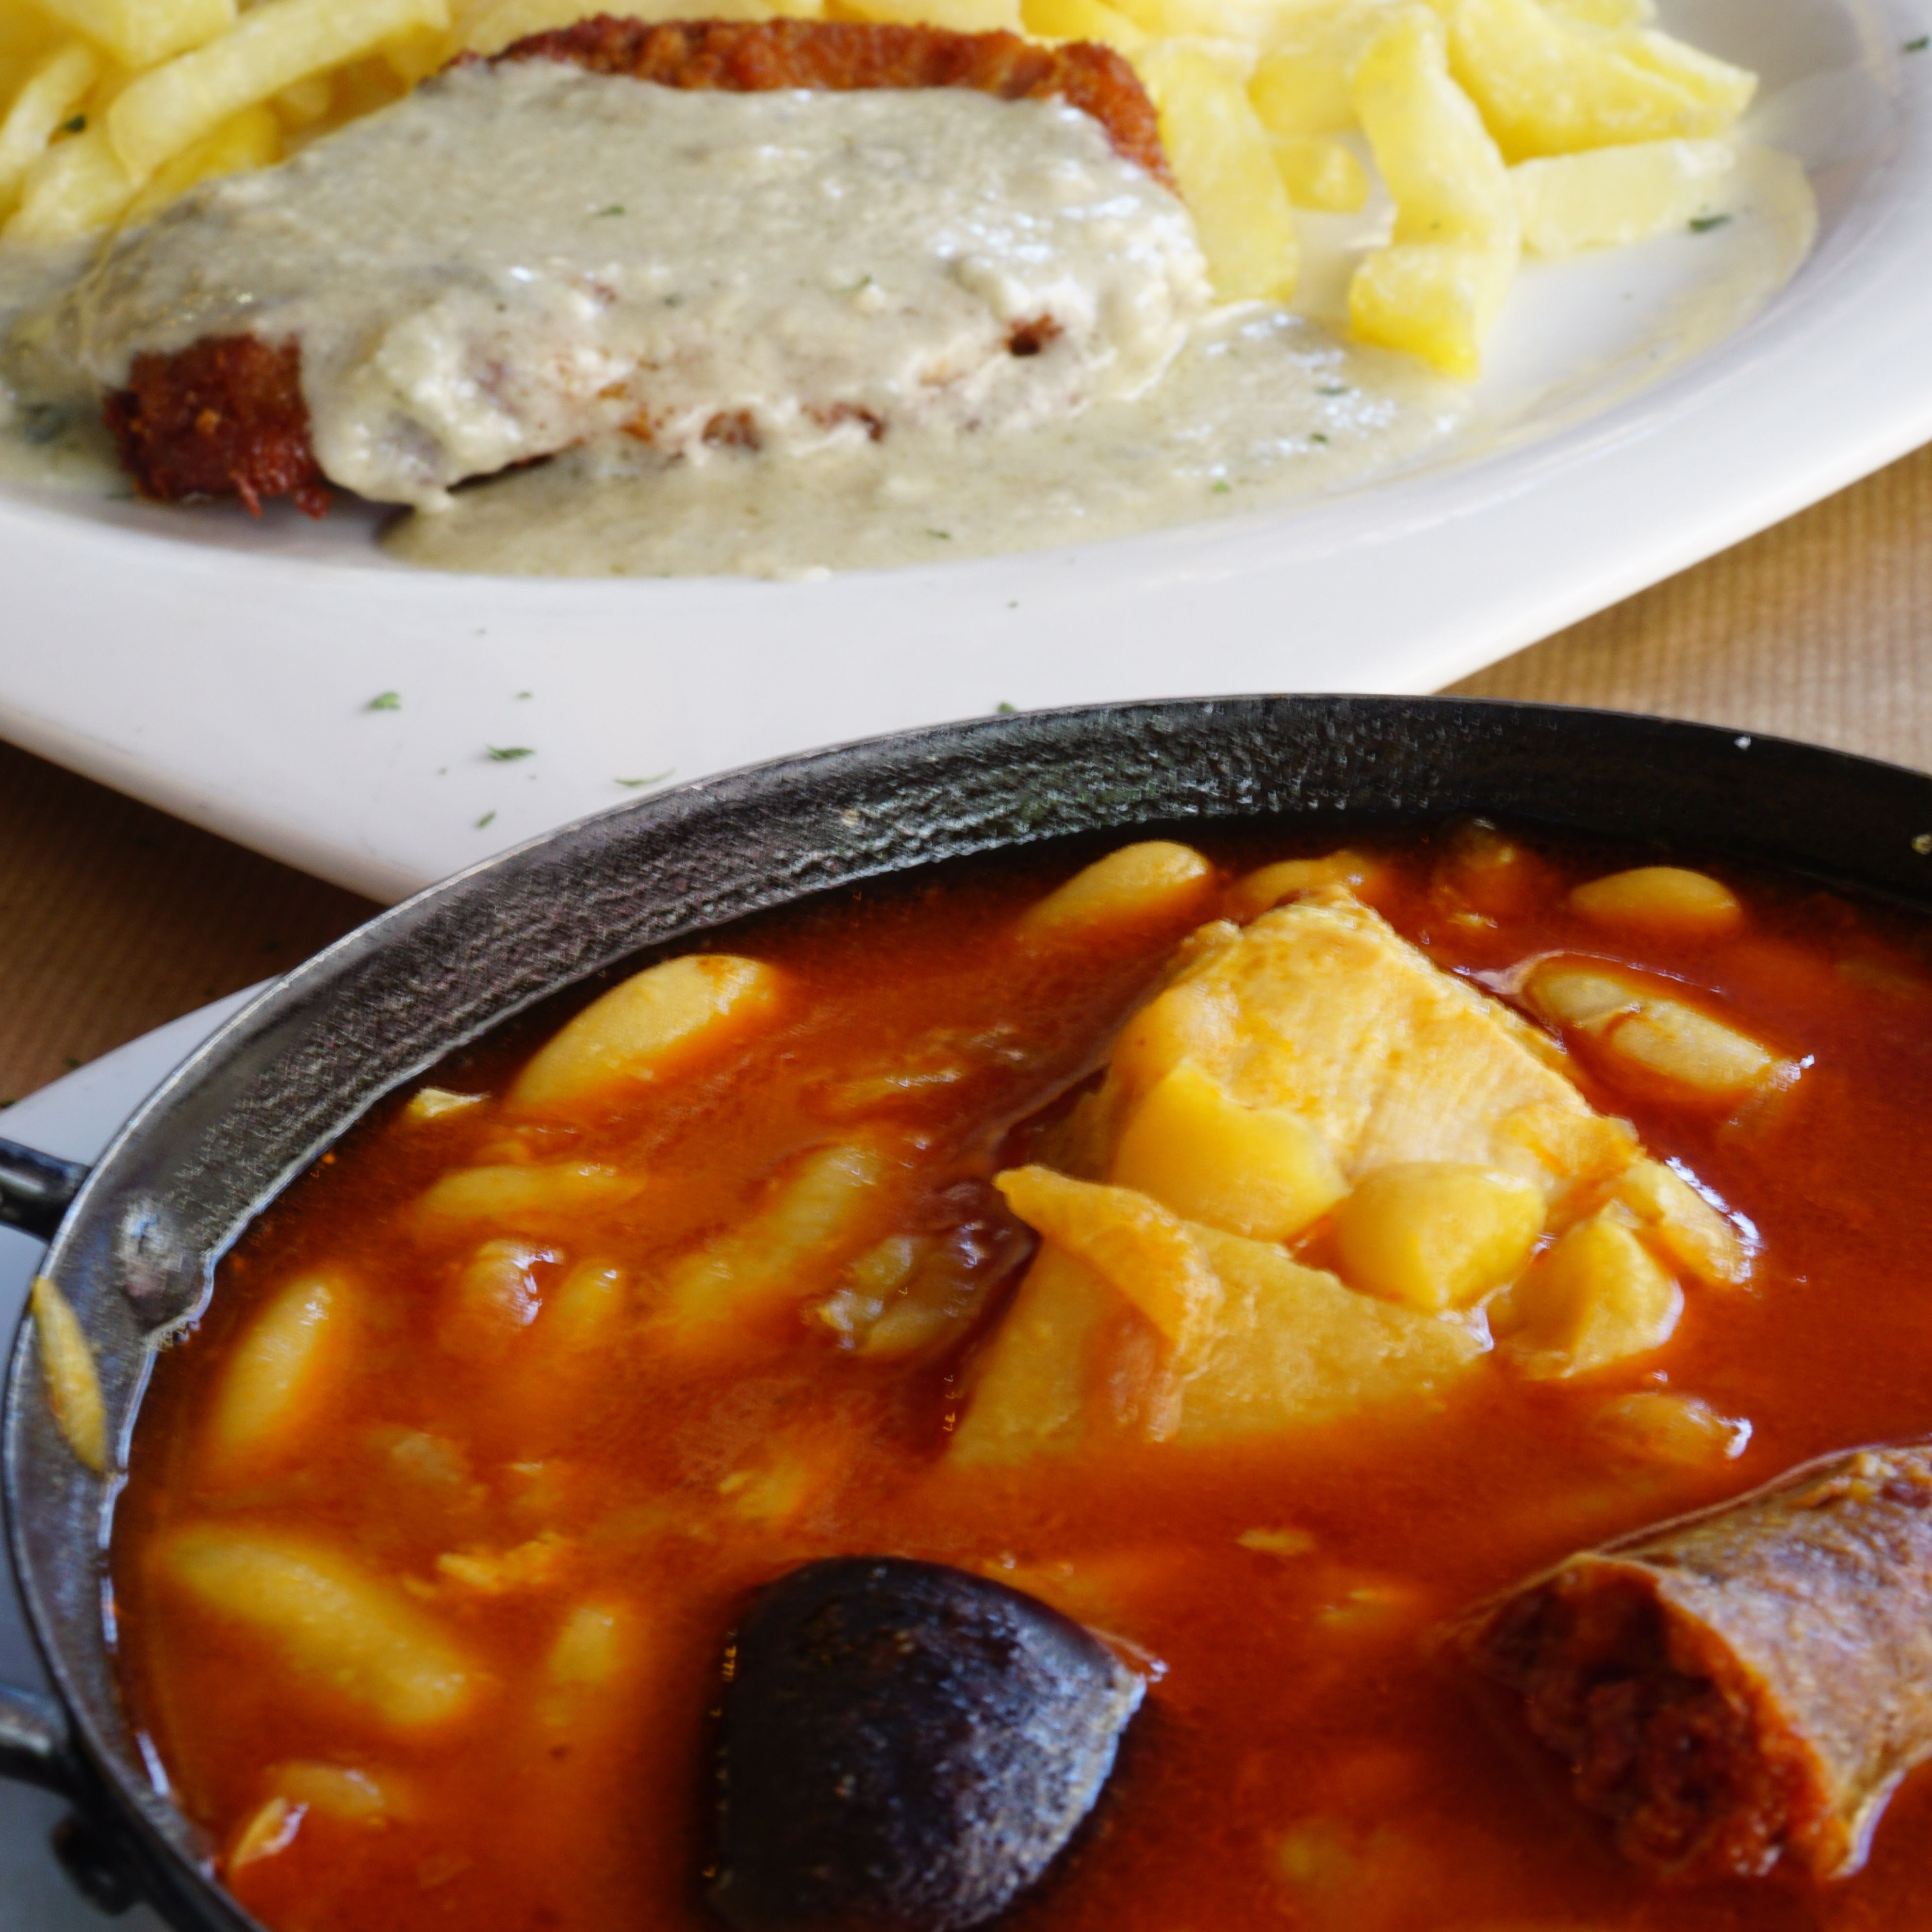 Cachopo in cabrales sauce and fabada, two traditional Asturian dishes